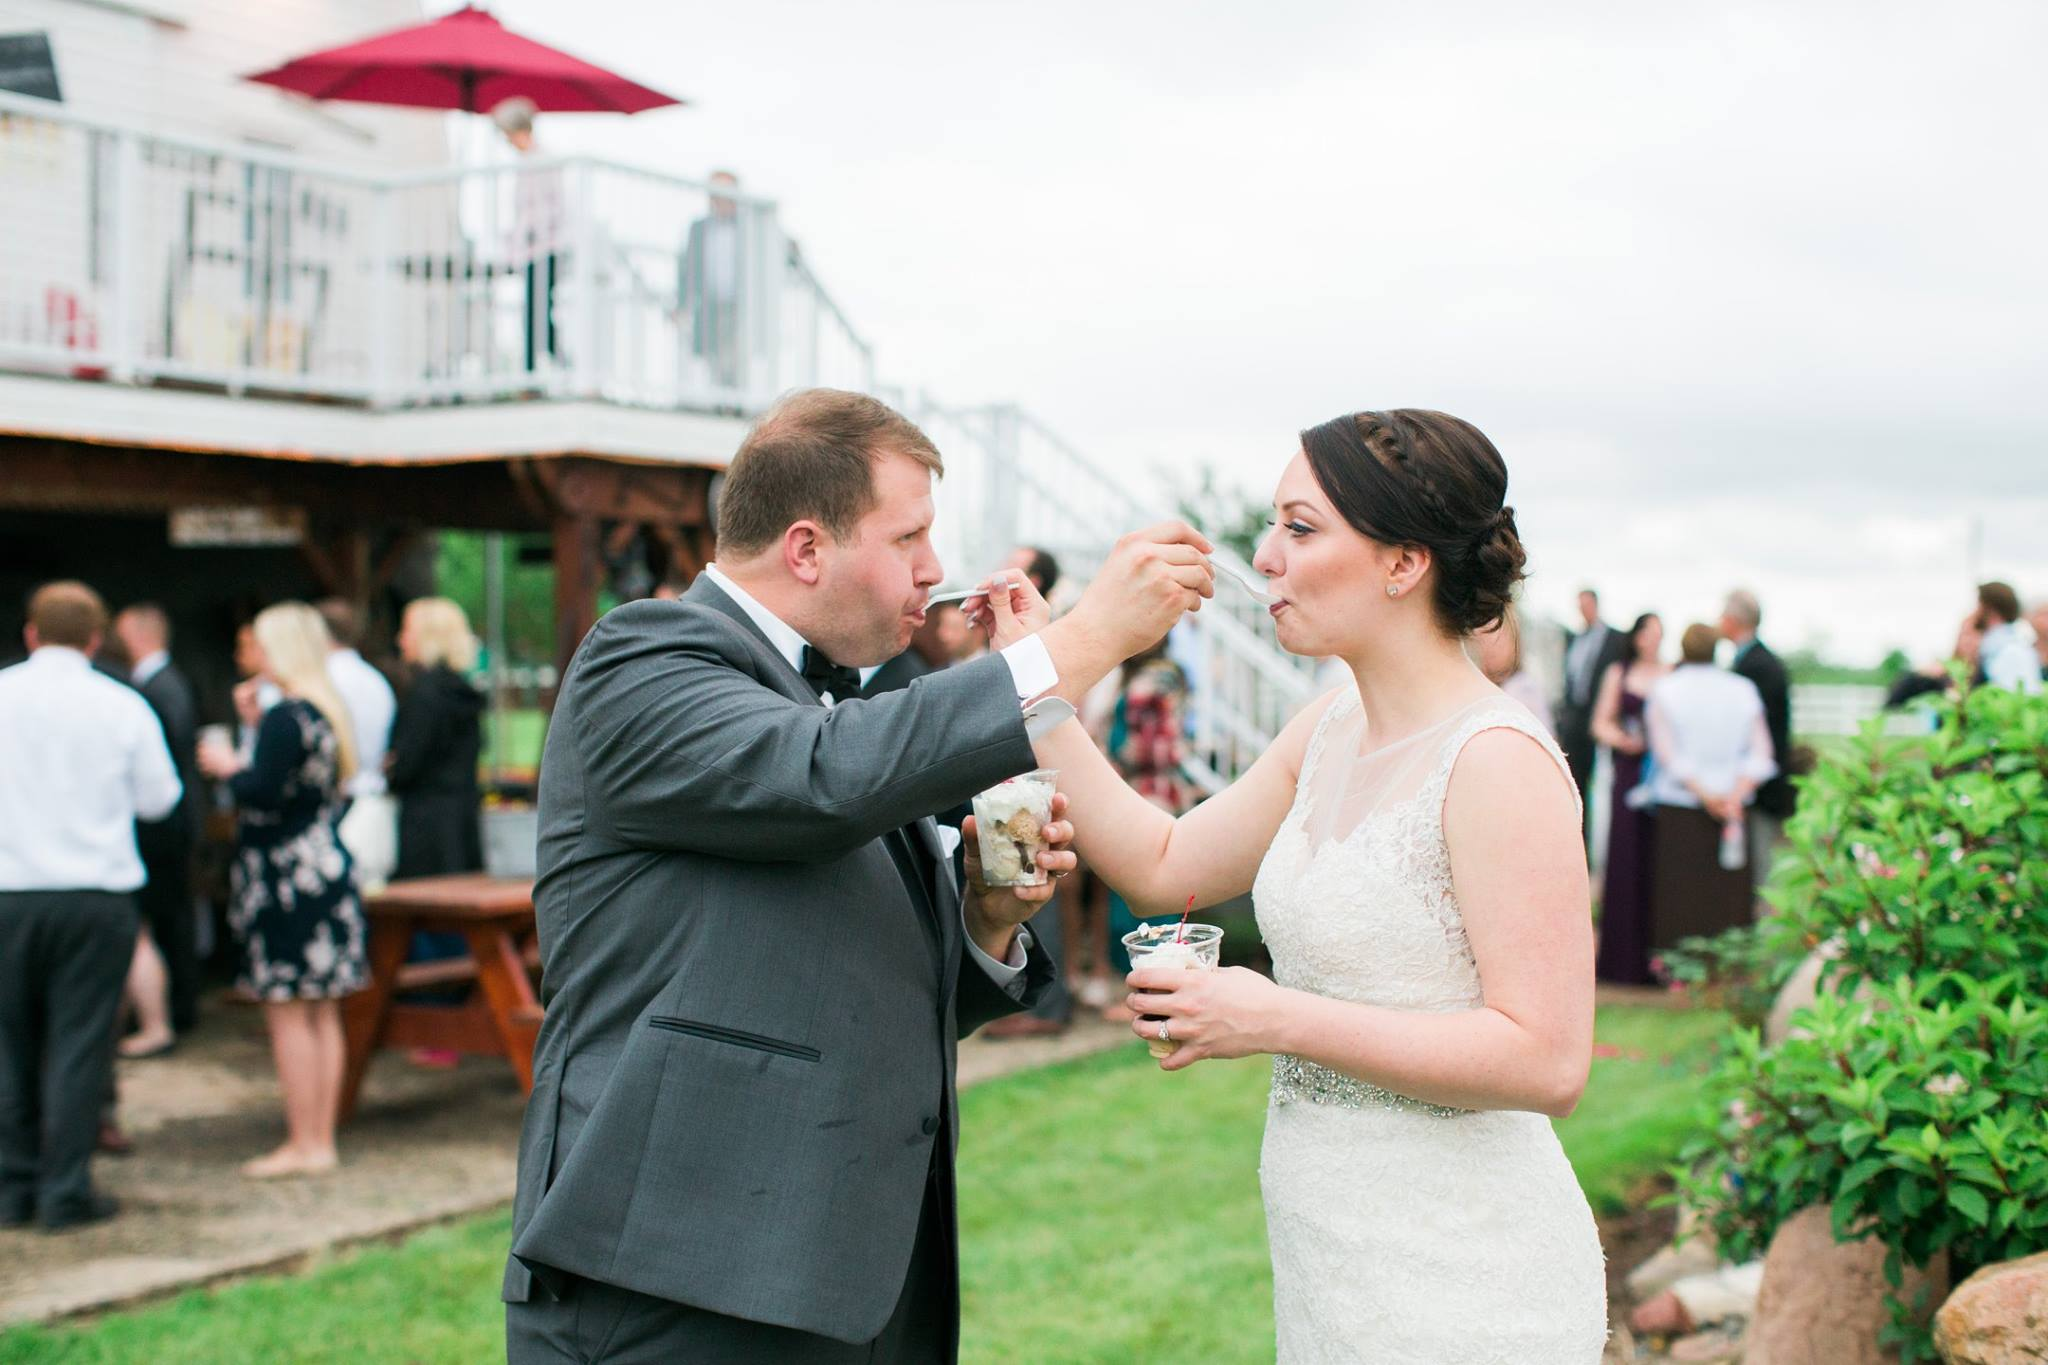 Bridgeman's Gourmet Ice Cream at your Wedding